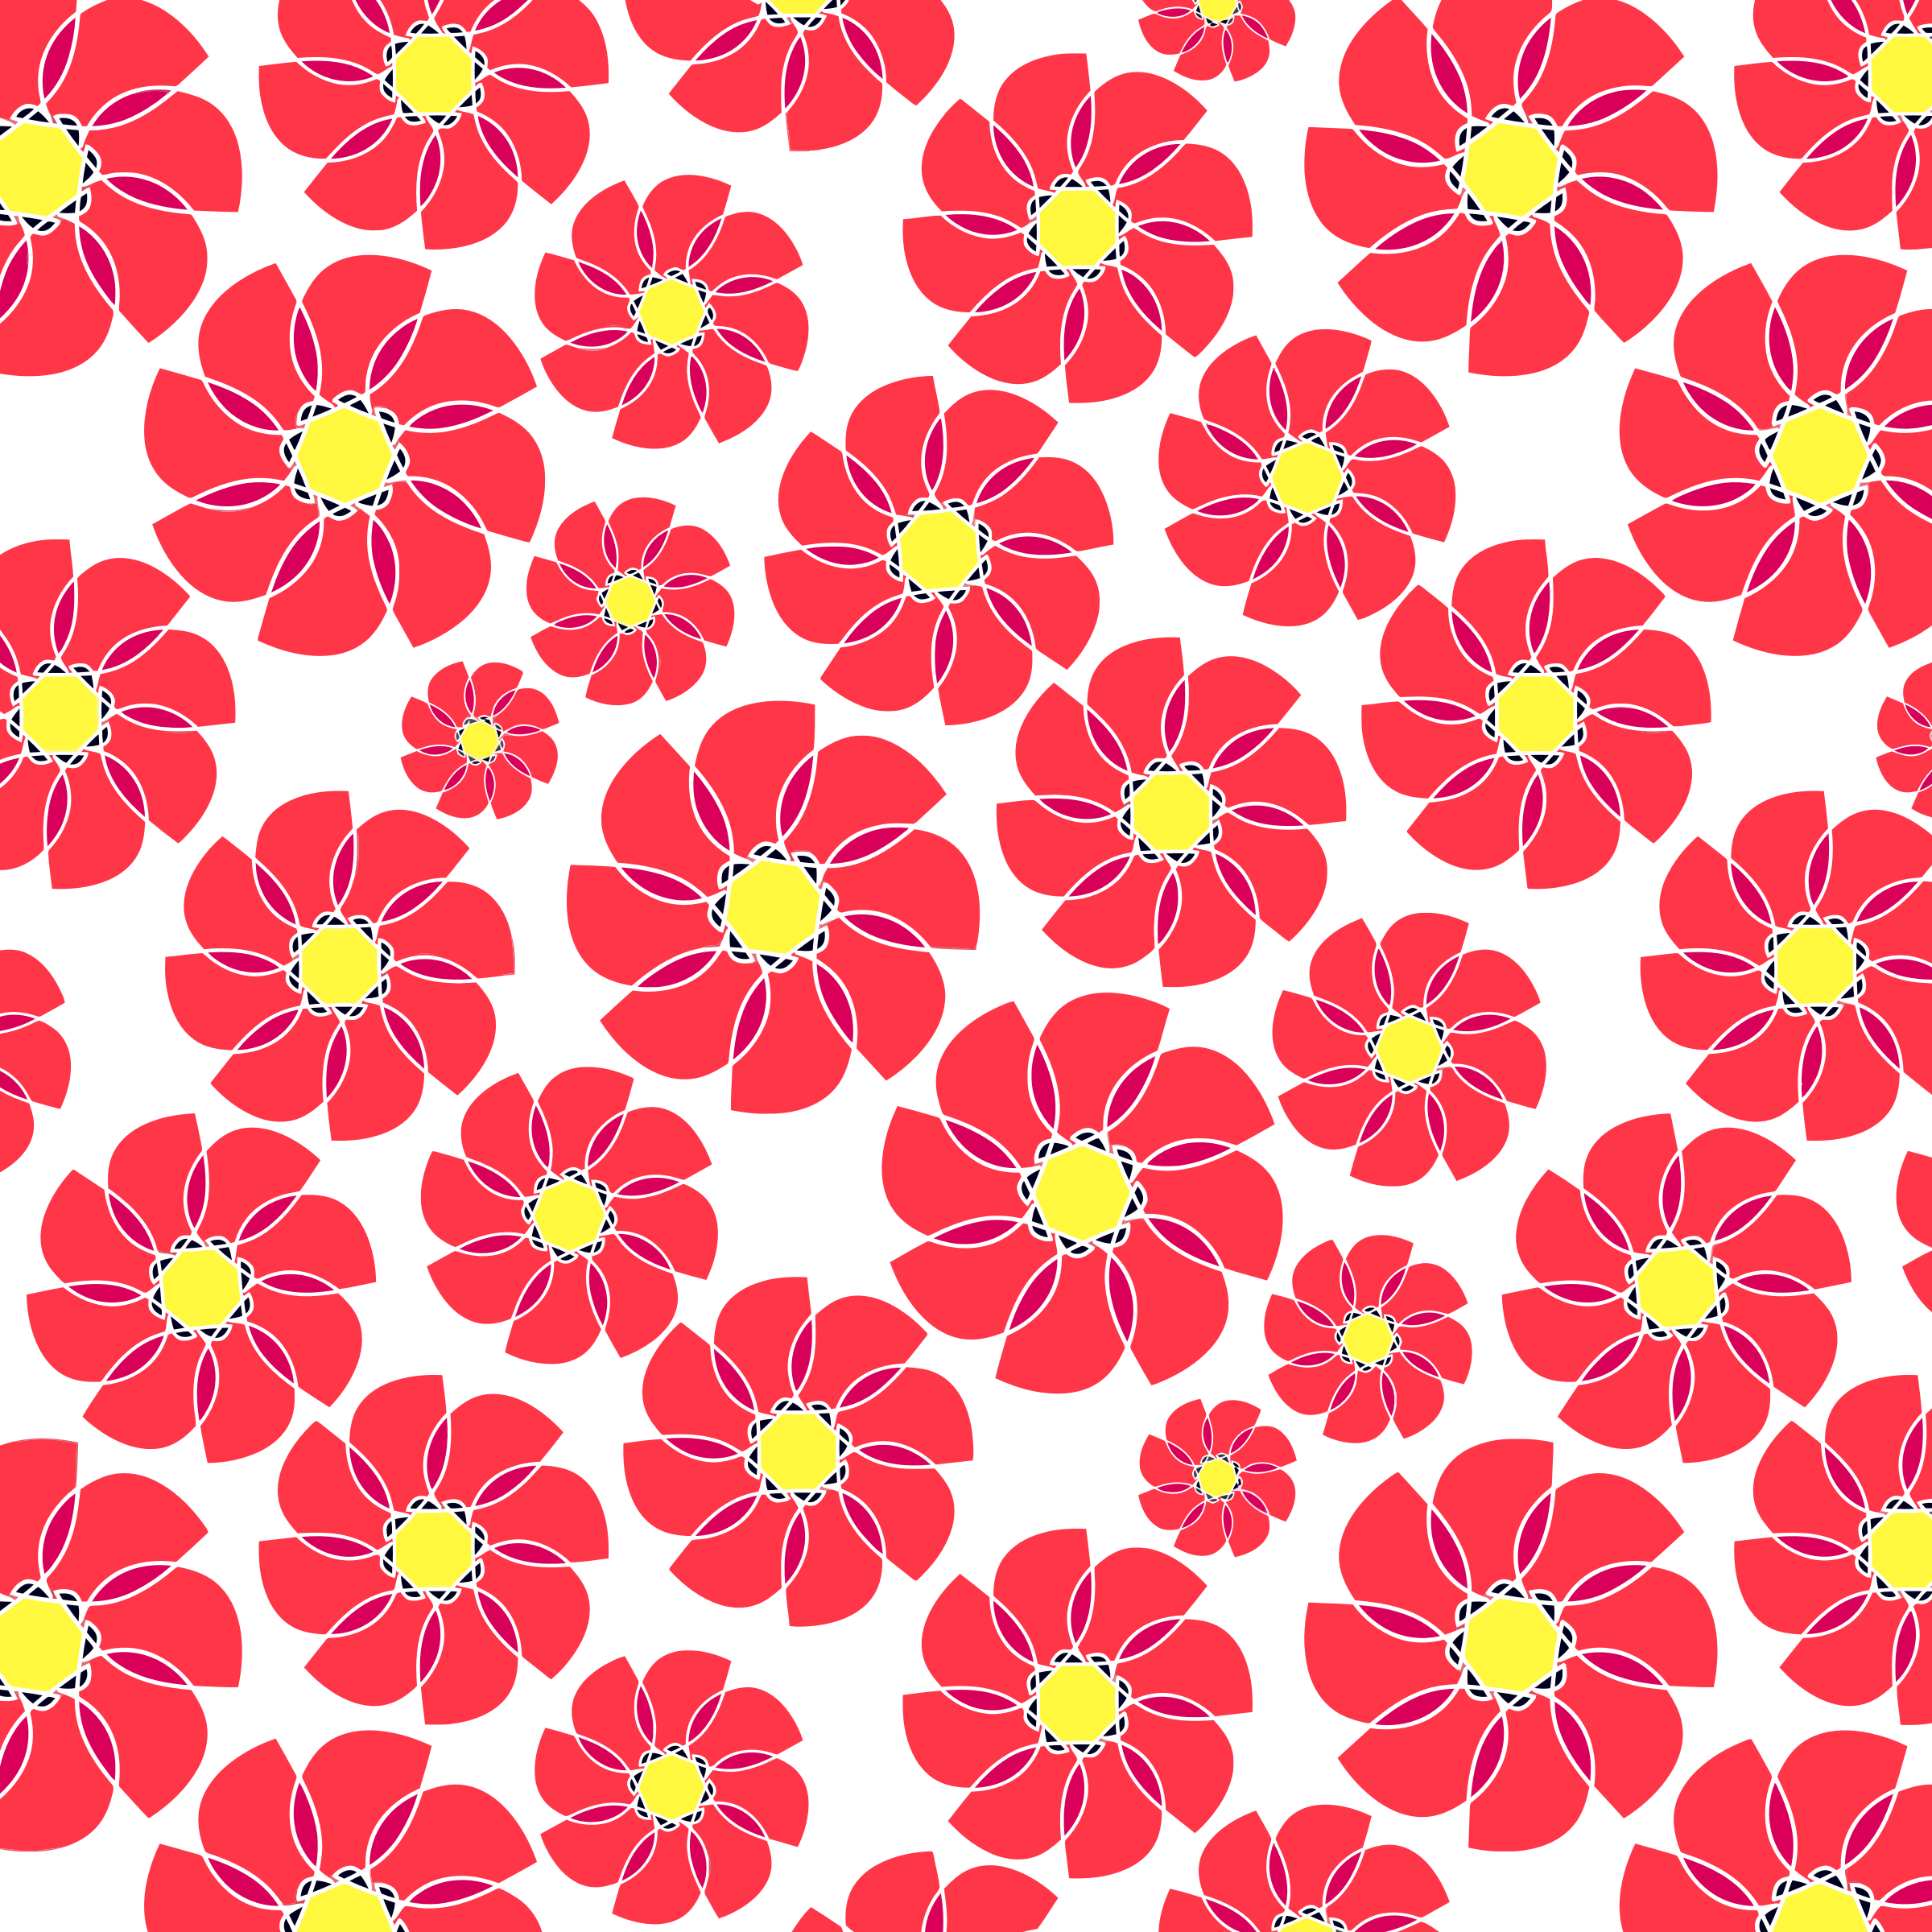 Seamless Floral Pattern Tile 3 by GDJ